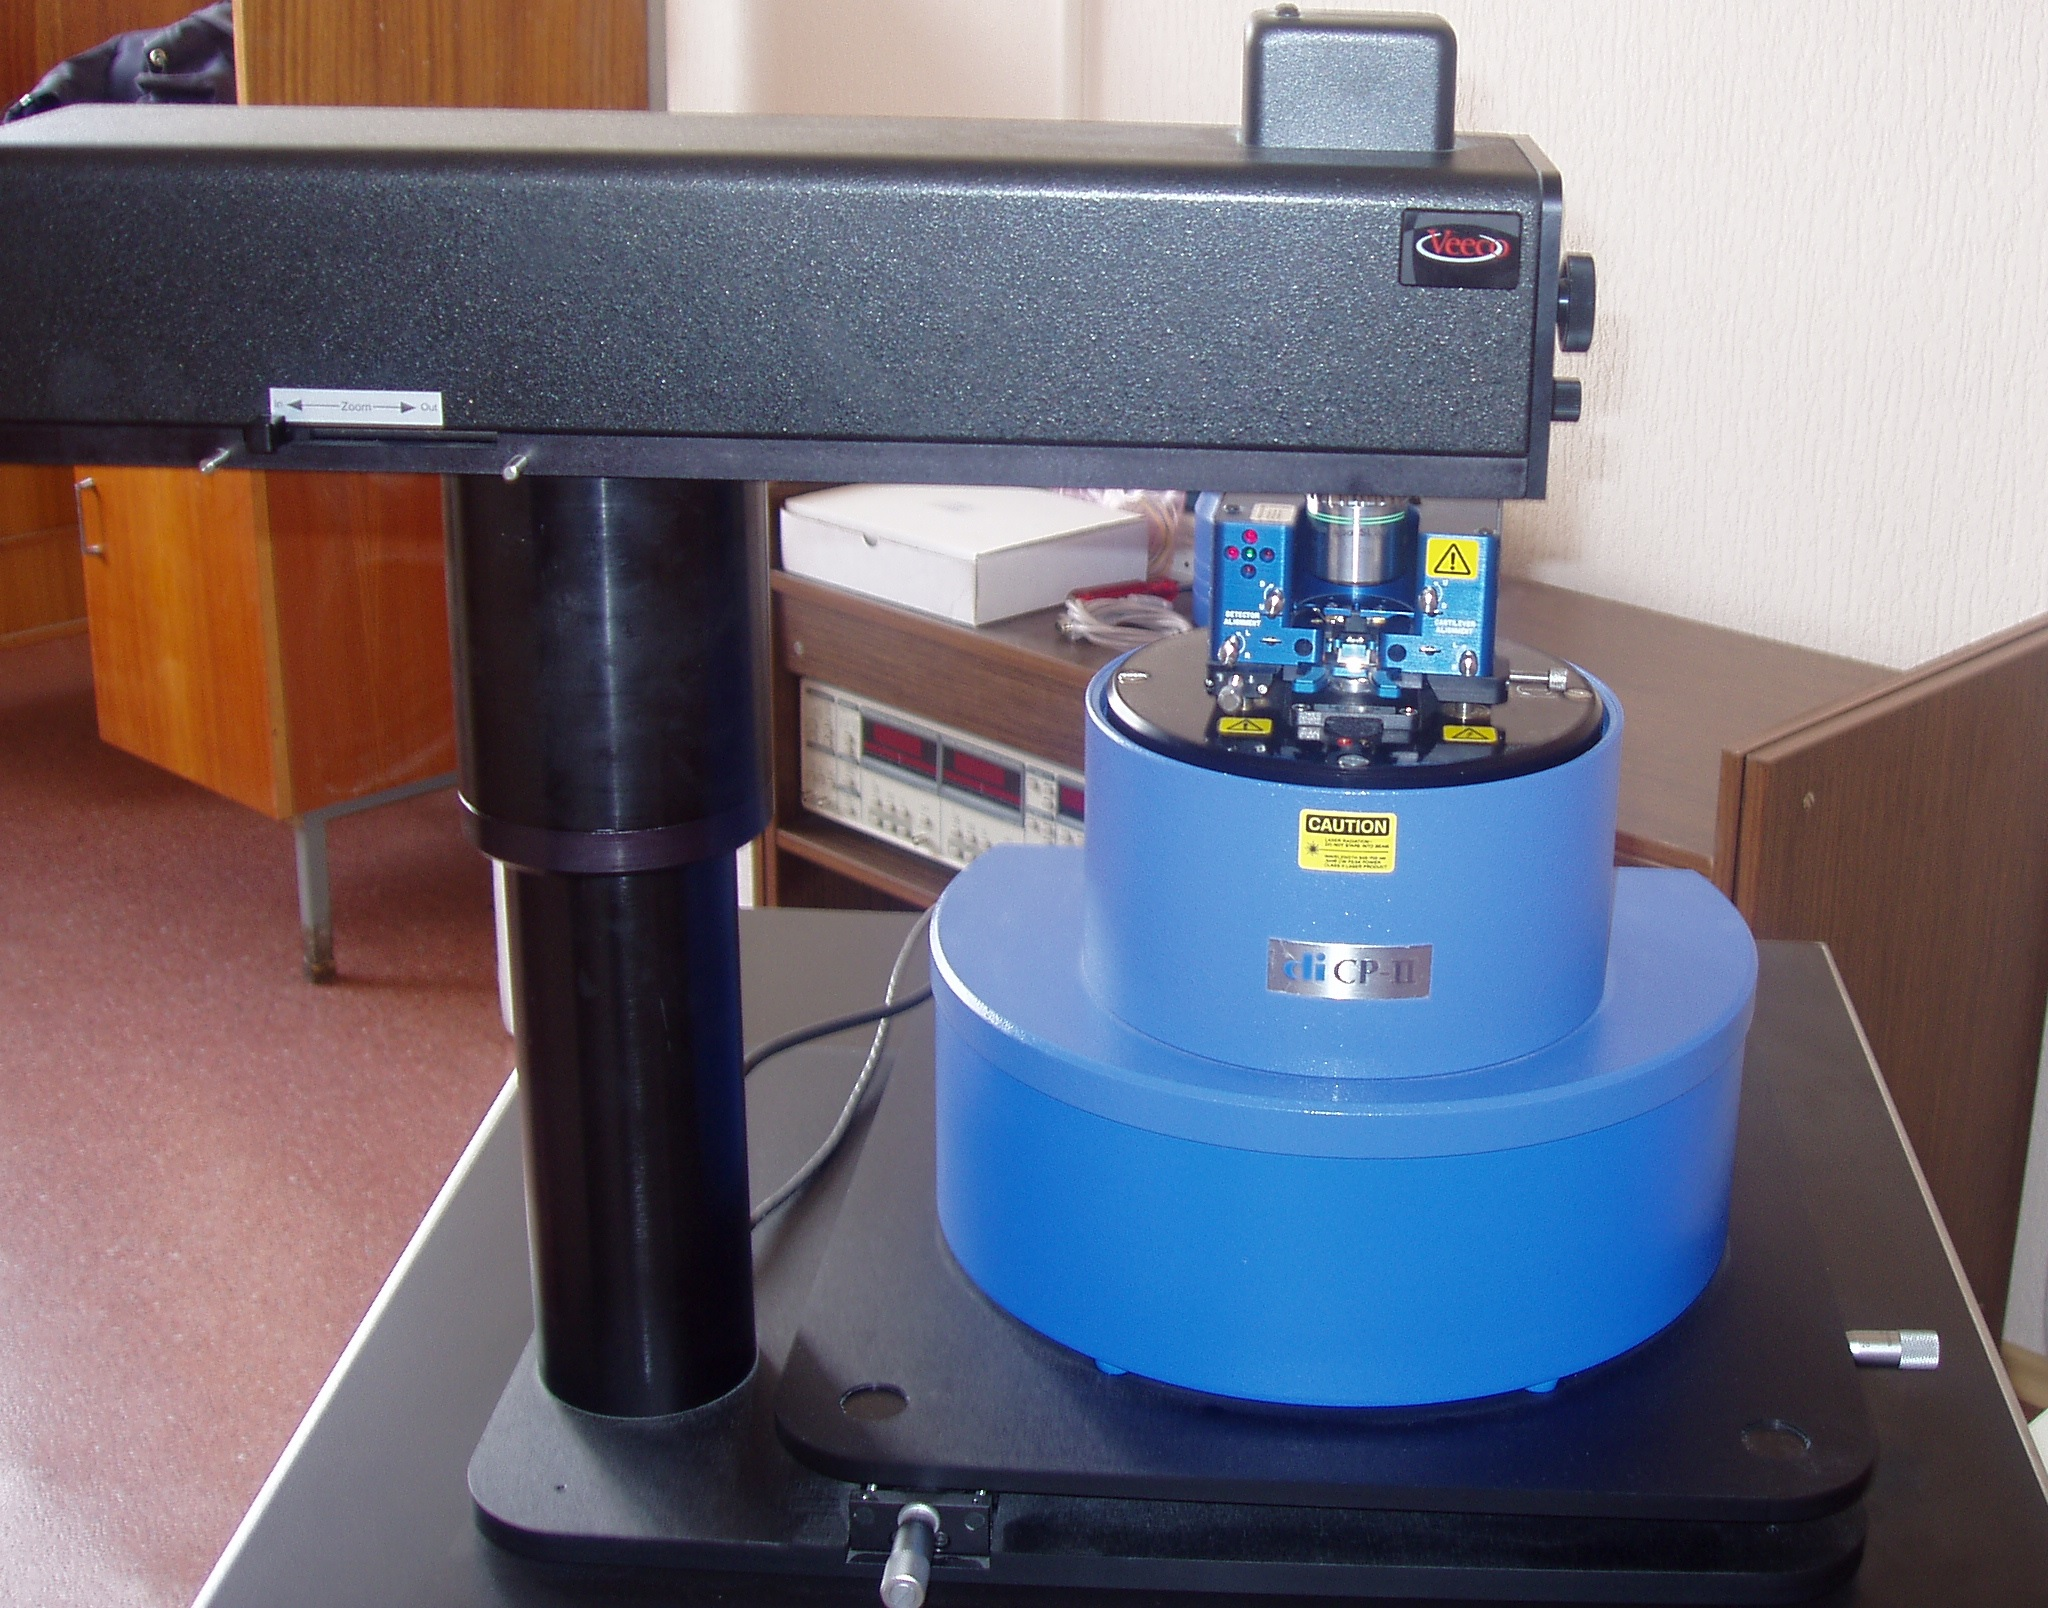 Atomic Force Microscope VEECO CP II